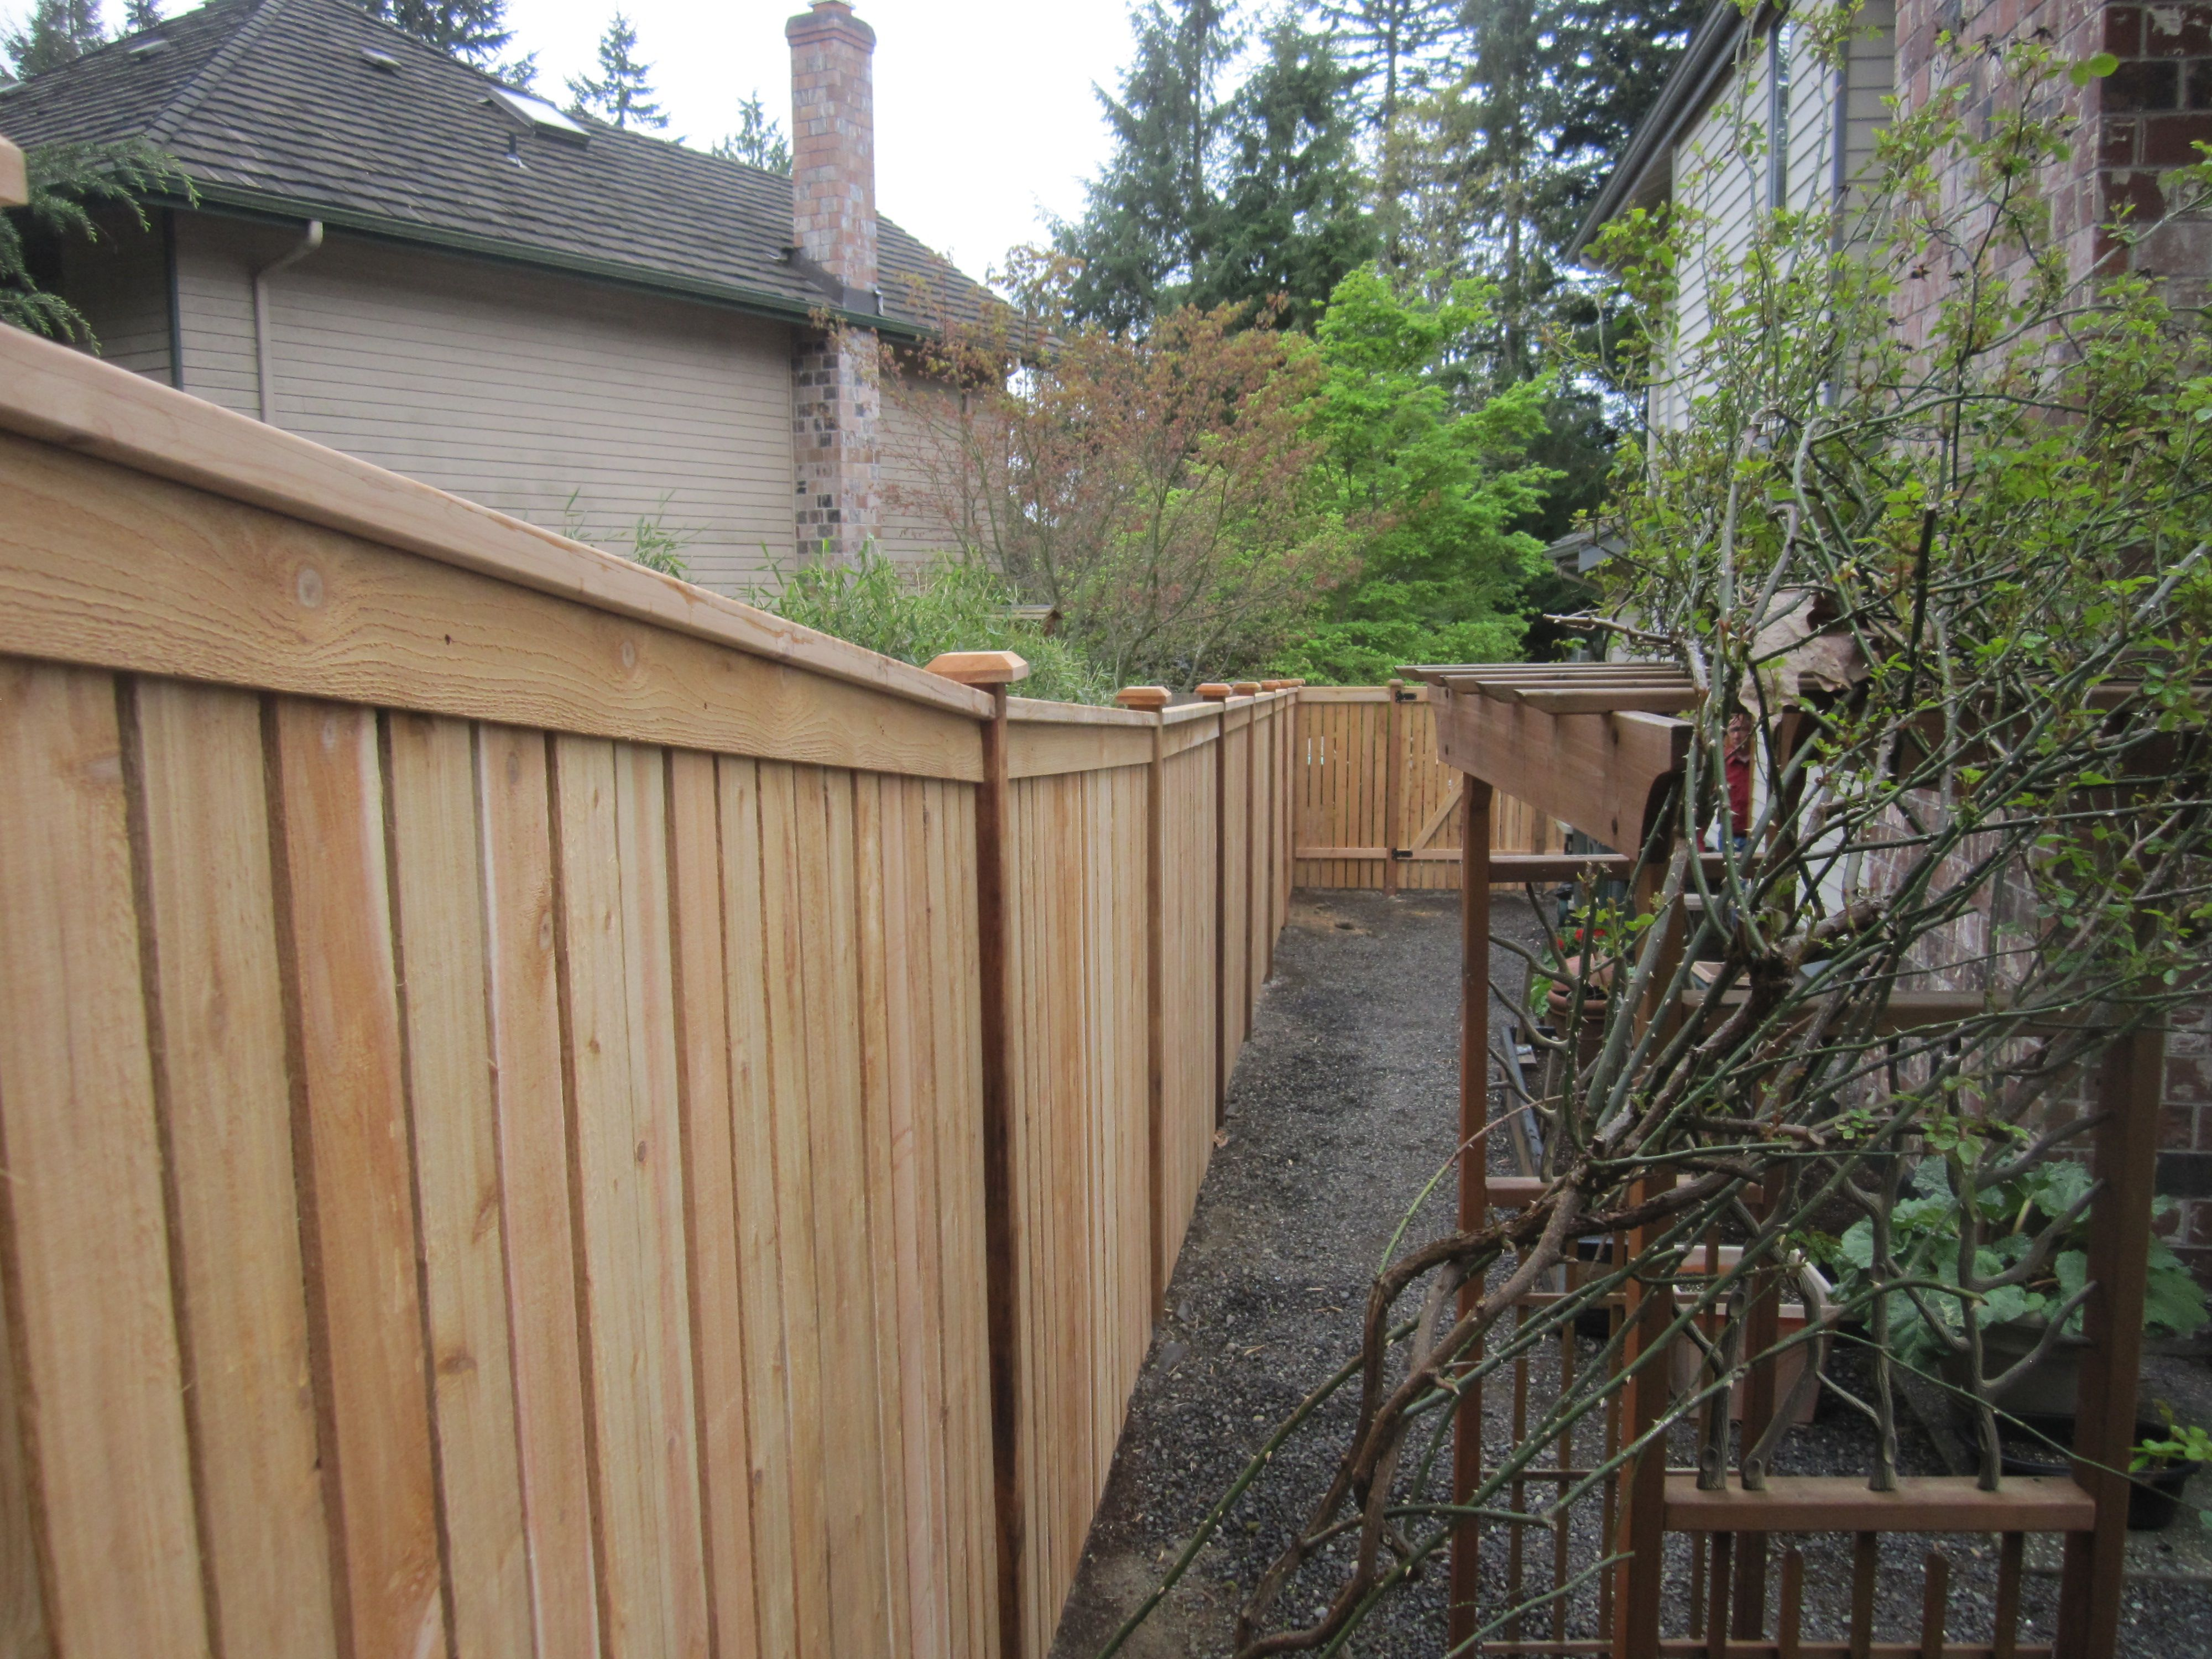 Modified Panel Cedar Fence On A Down A Slope Cedar Fence Fence Styles Wooden Fence